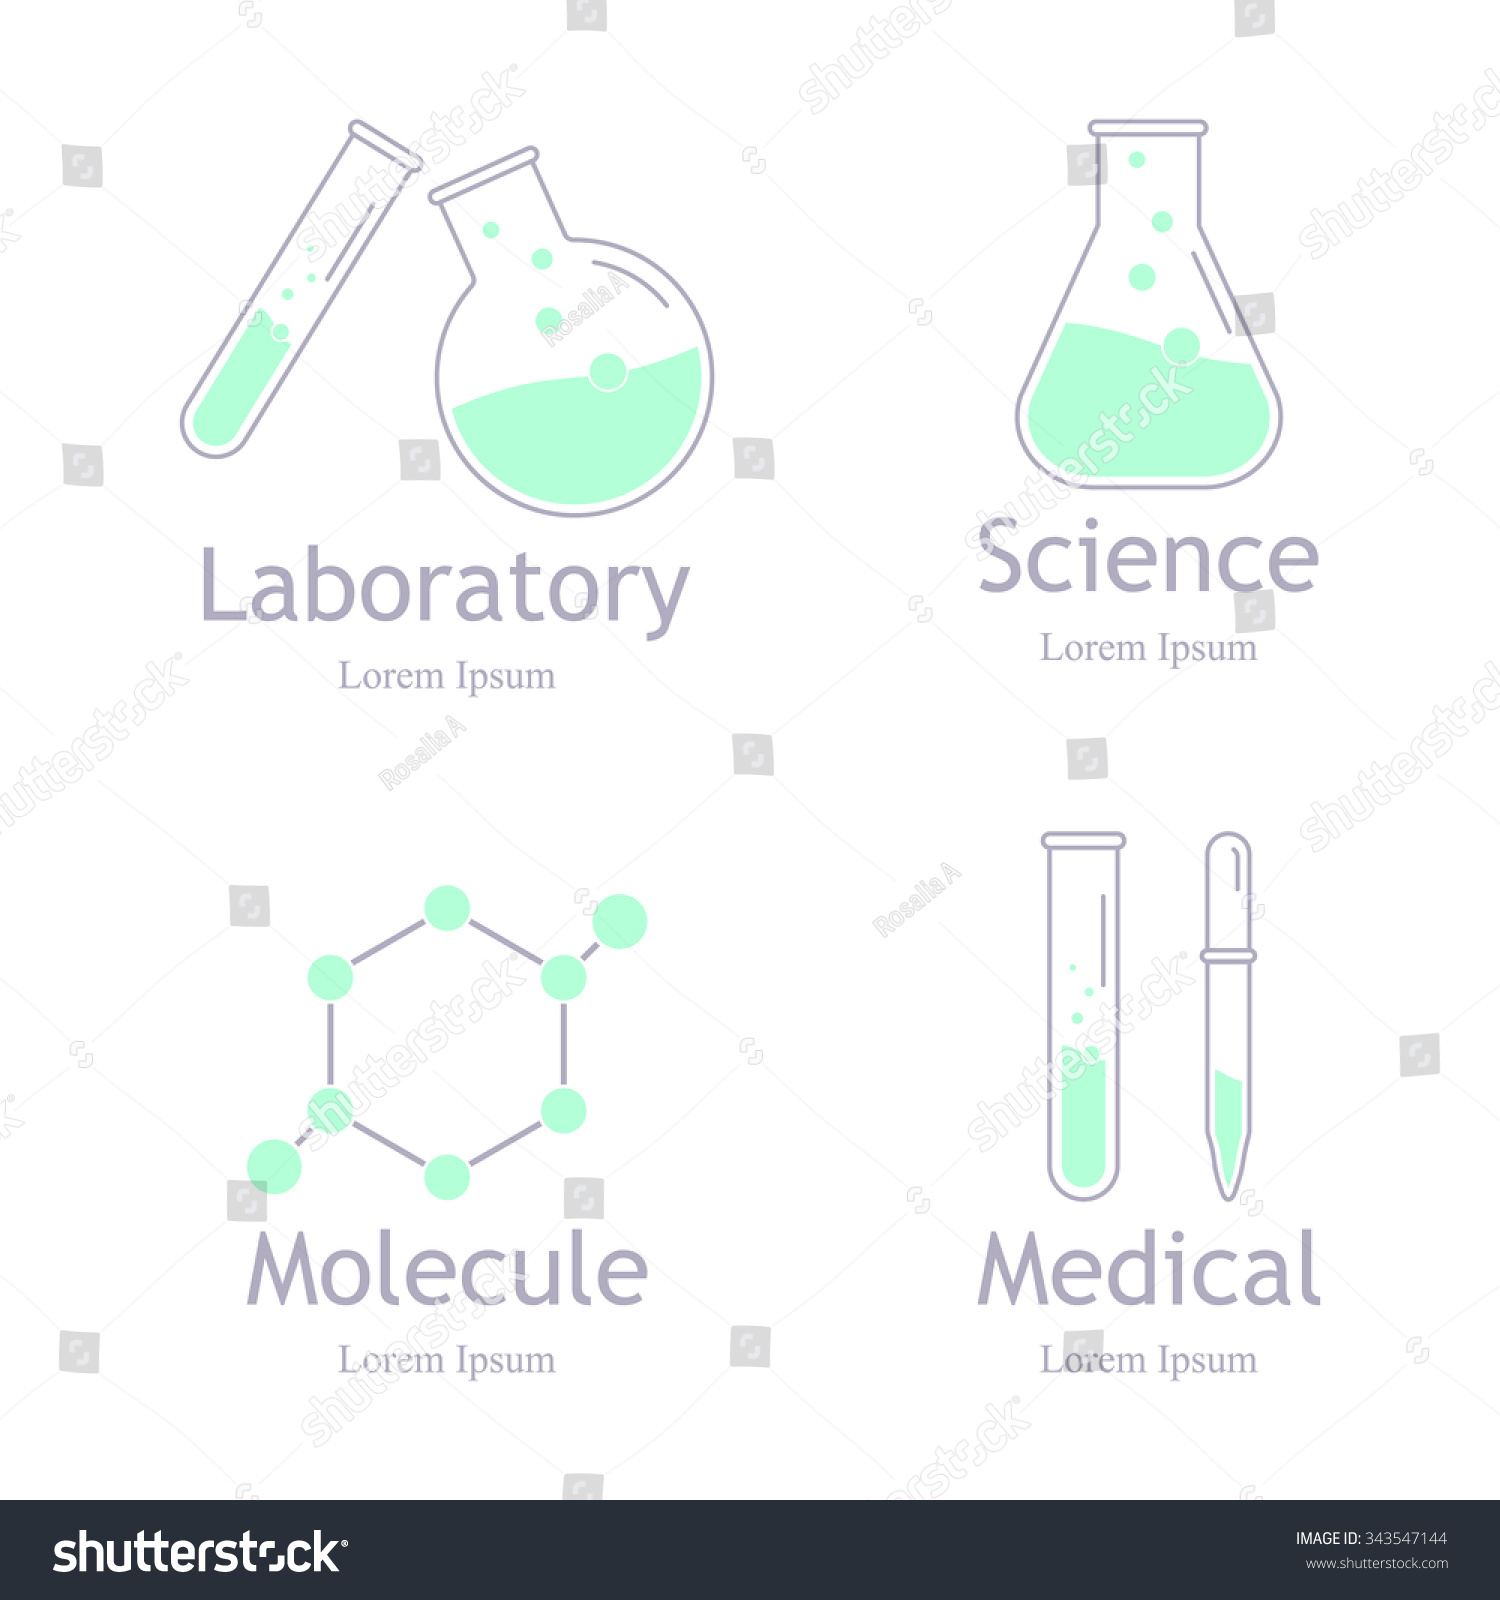 Laboratory Chemical Medical Test Logo Icon Stock Illustration